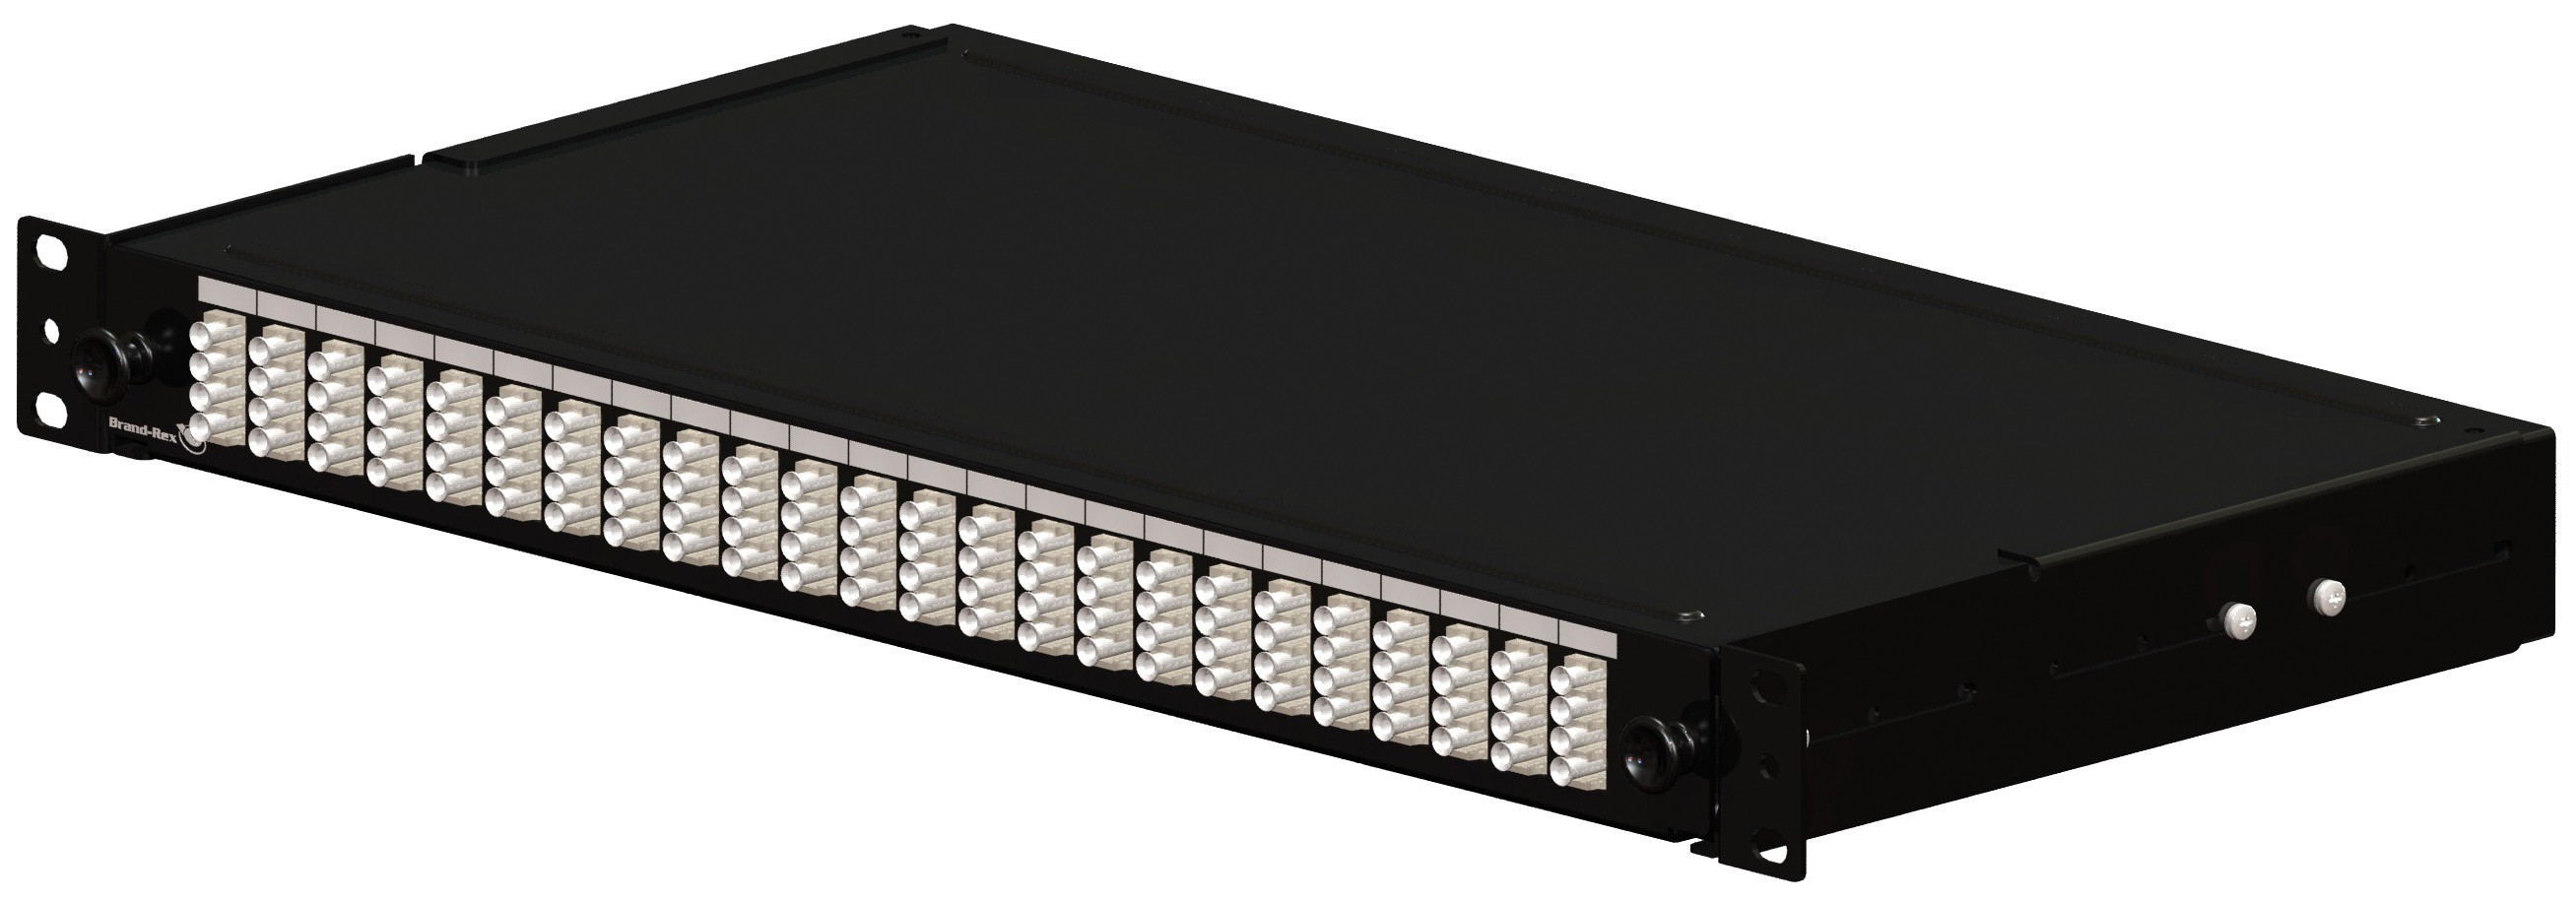 Brand-Rex Optical Panel loaded with 4 MT-RJ adapters